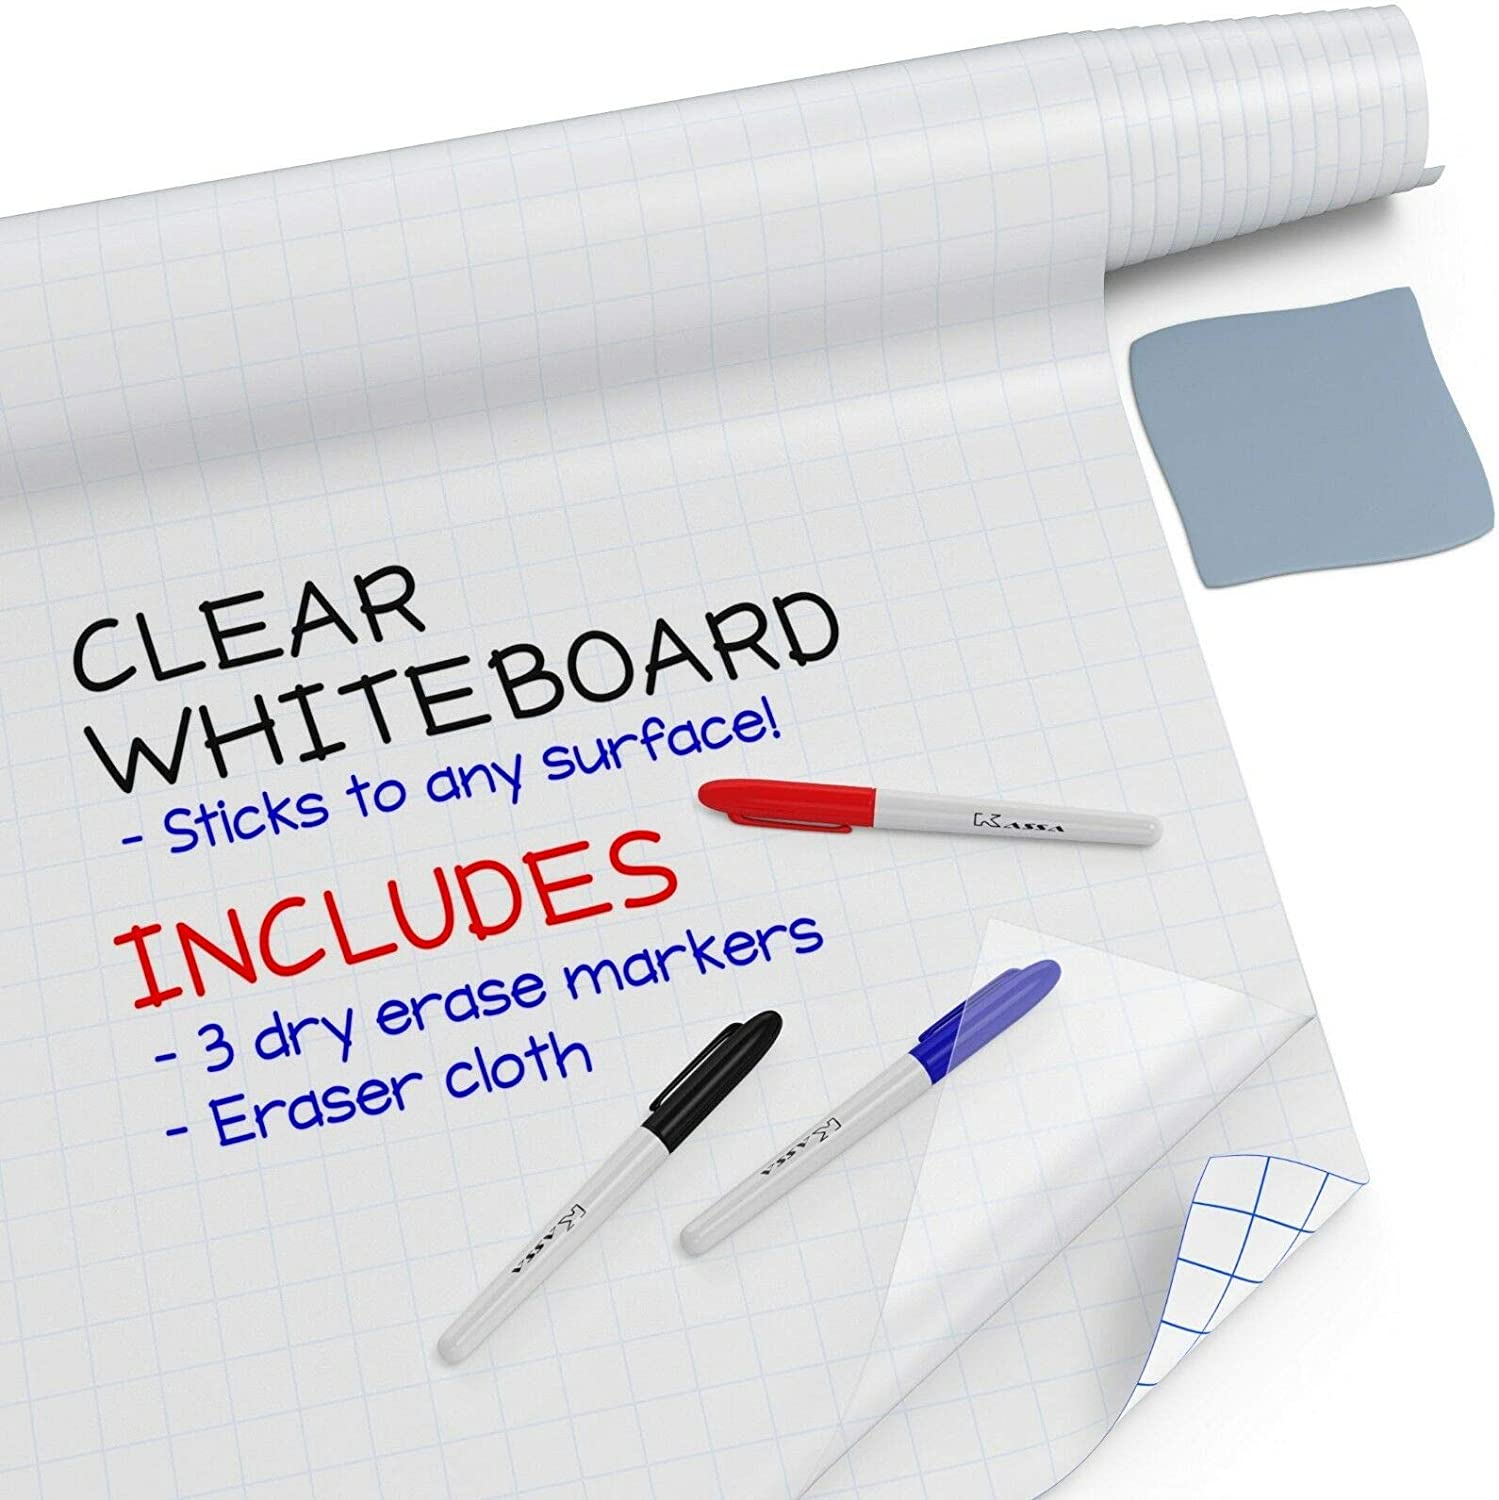 "Kassa Clear Dry Erase Board Sticker - 17.3"" x 78"" (6.5 Feet) - 3 Dry-Erase Board Markers Included - Transparent Adhesive White Board for Refrigerator, Desk, Office - Glass Dry Erase Board Alternative"